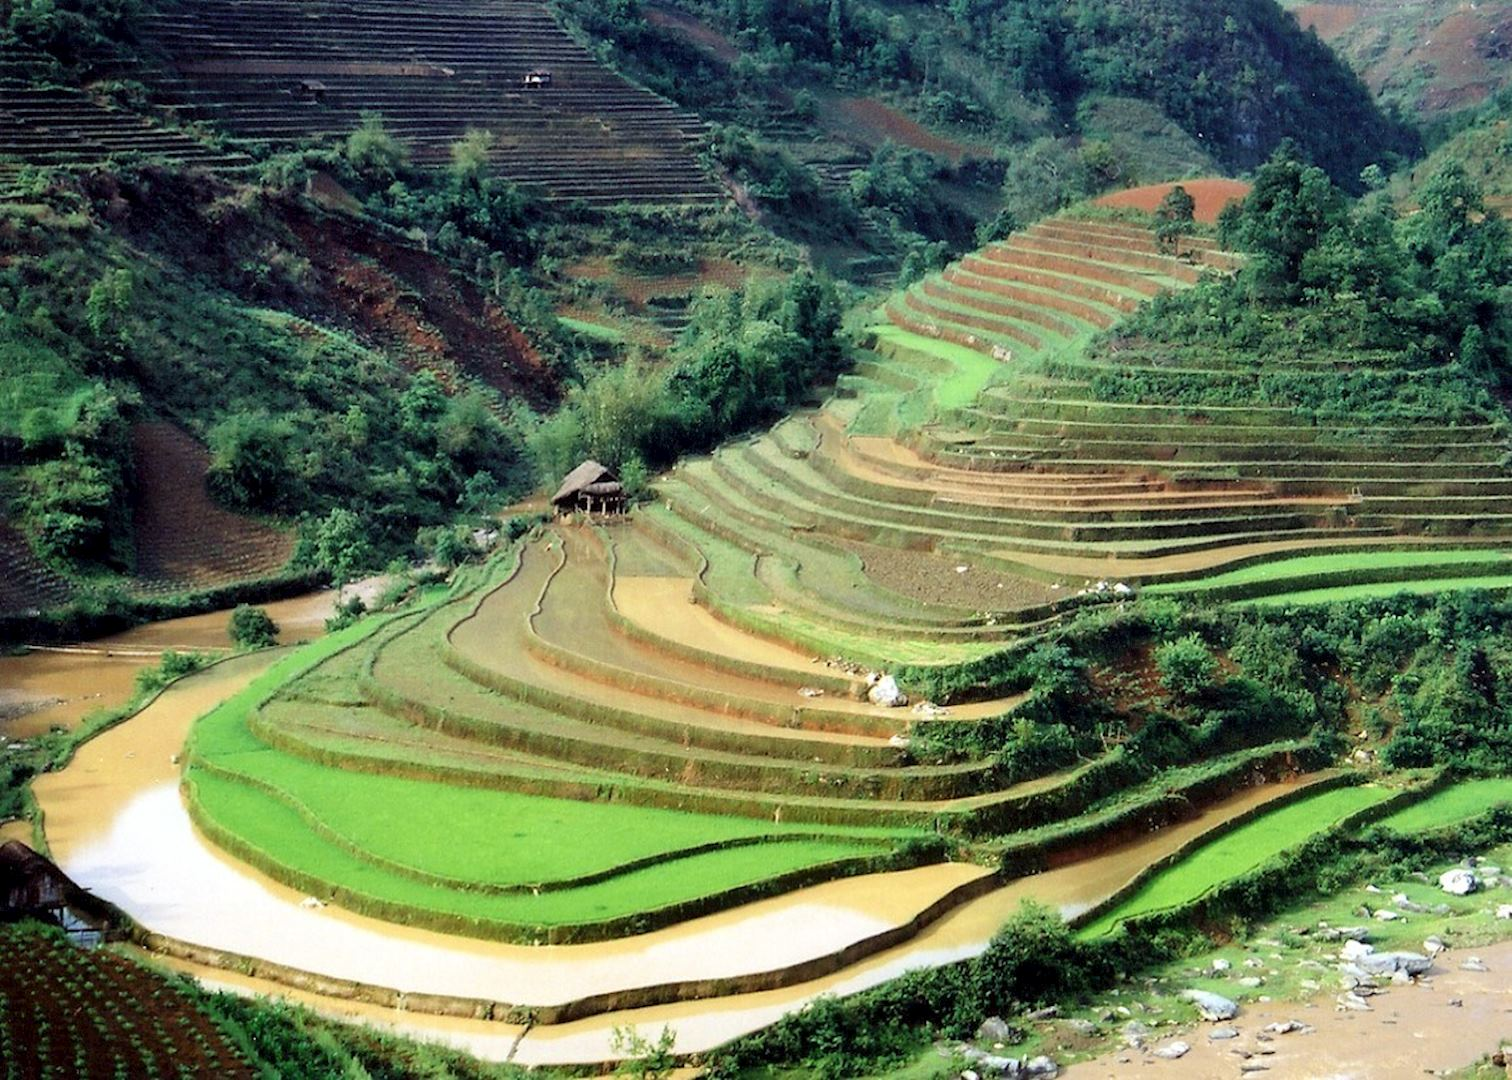 Visit Sapa & the Tonkinese Alps, Vietnam | Audley Travel